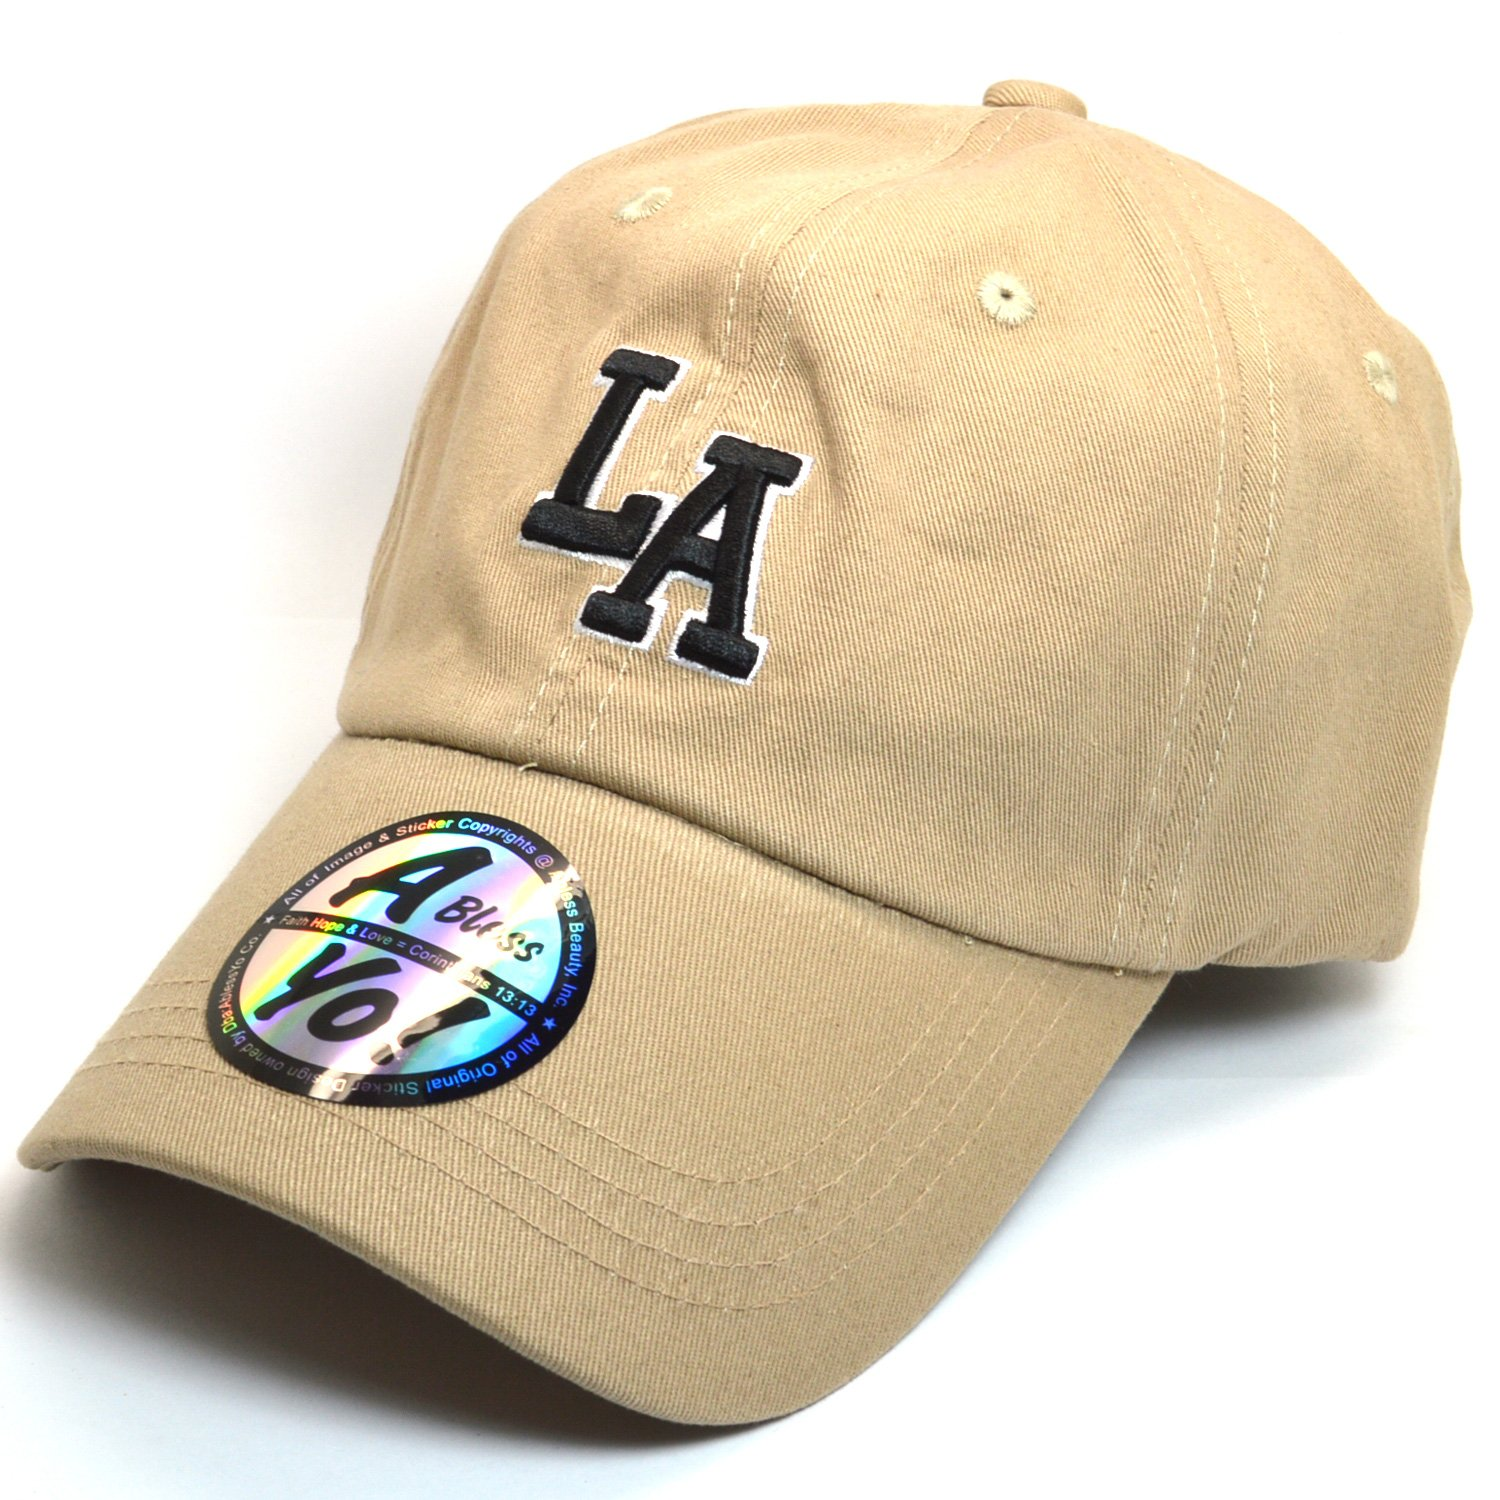 LA Embroidered Polo Style Cotton Dad Hat Durable Baseball Cap AYO1120  (Beige) at Amazon Women s Clothing store  5e93daf1939